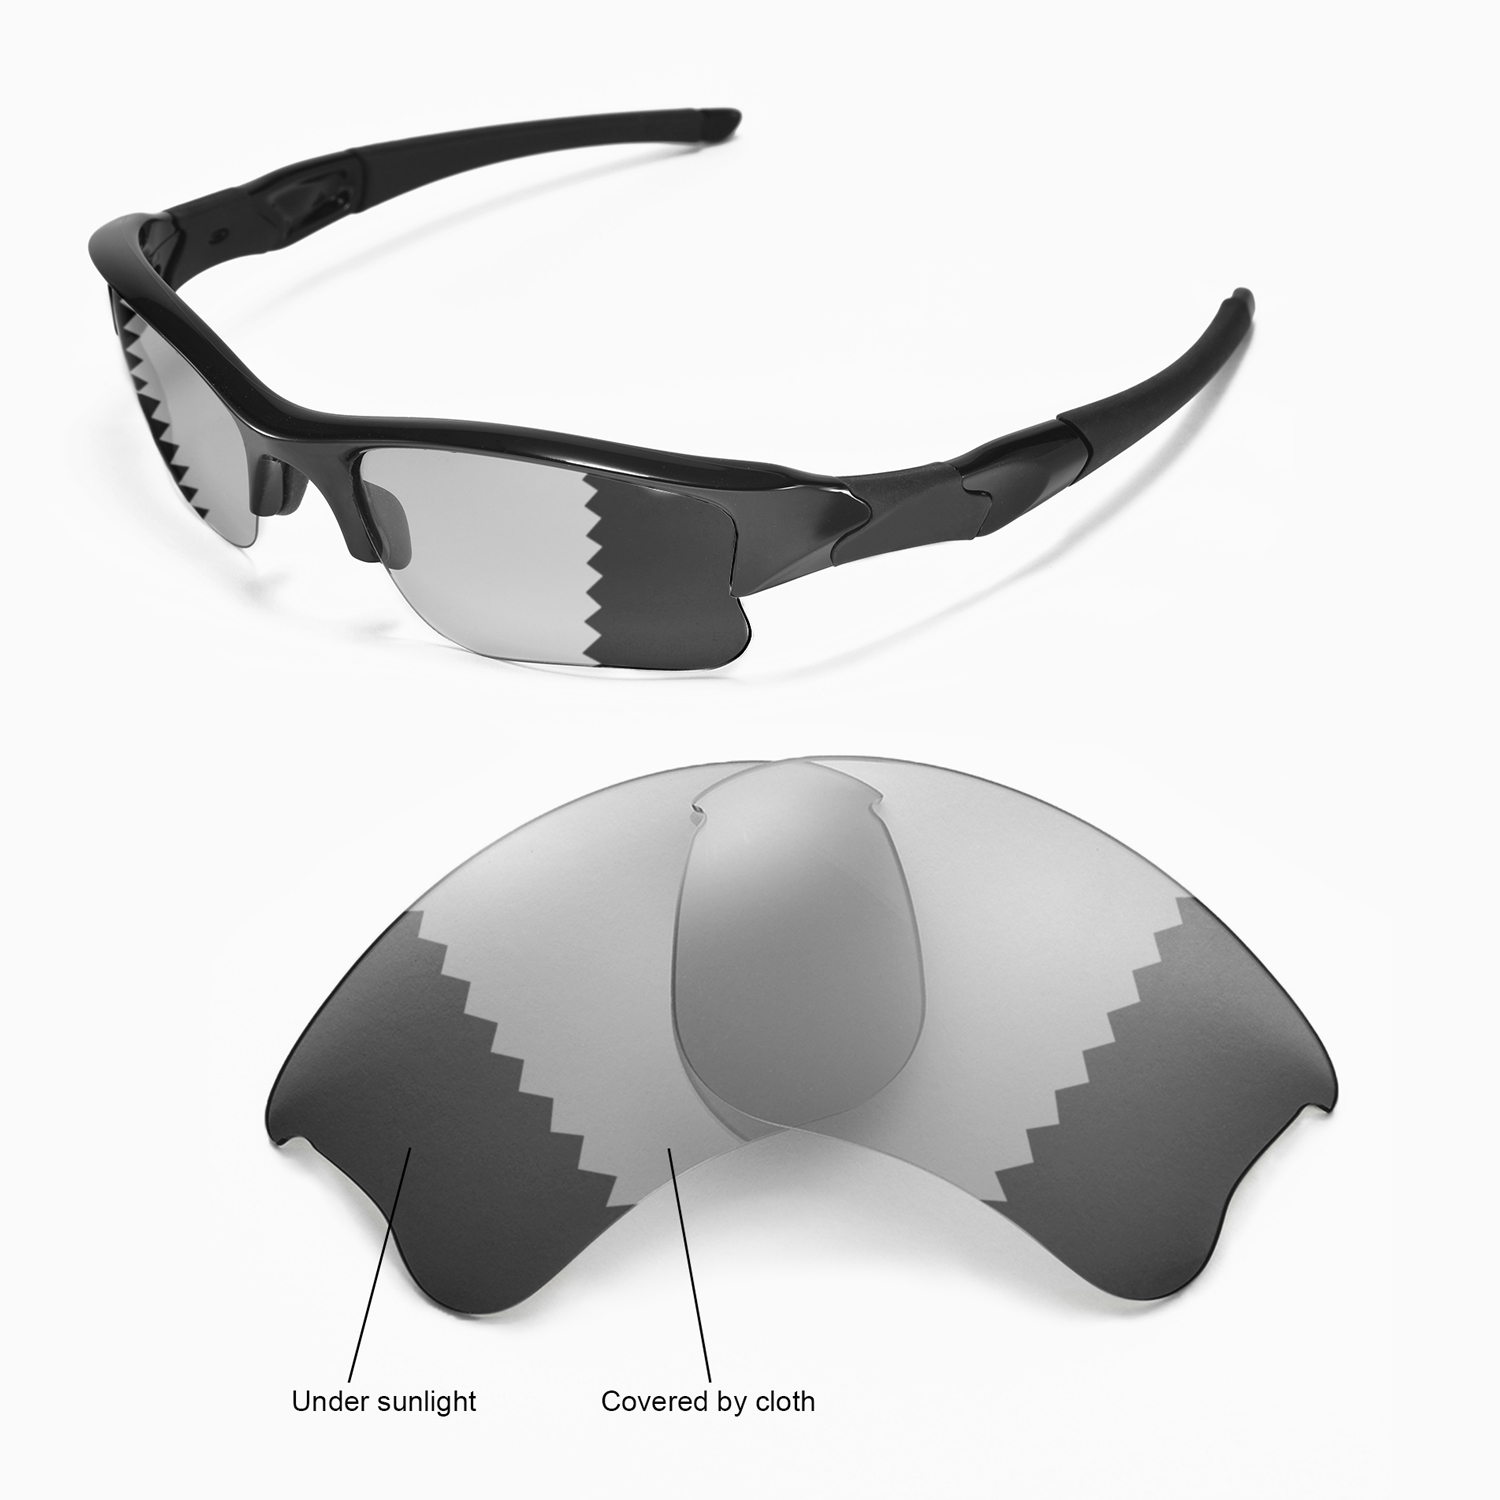 fadc017d5b Details about New Walleva Polarized Transition Photochromic Lenses For  Oakley Flak Jacket XLJ